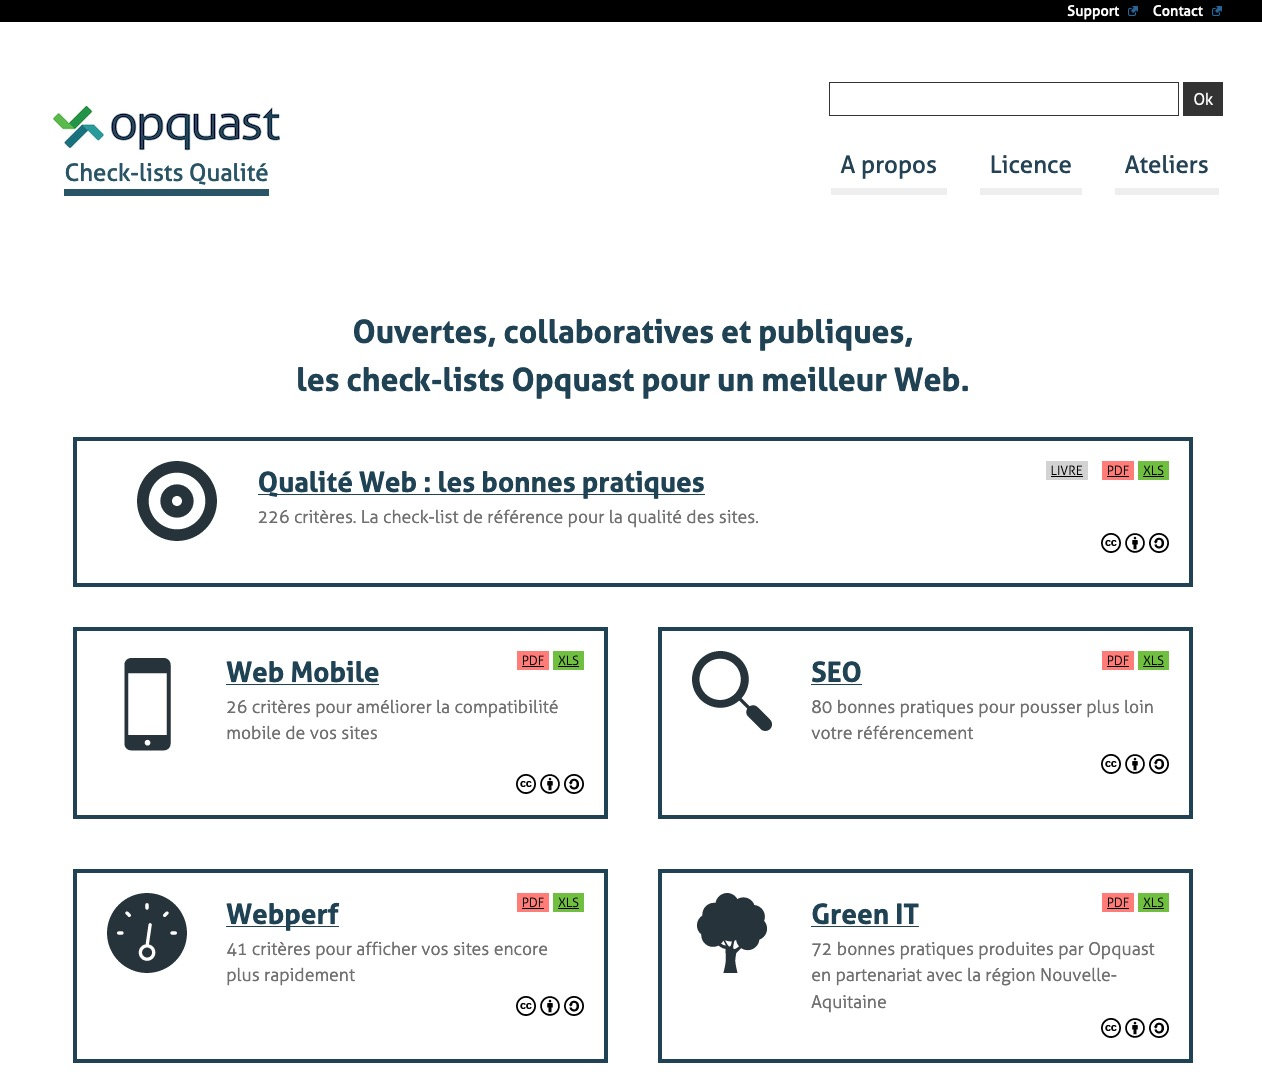 Capture de la home de Opquast